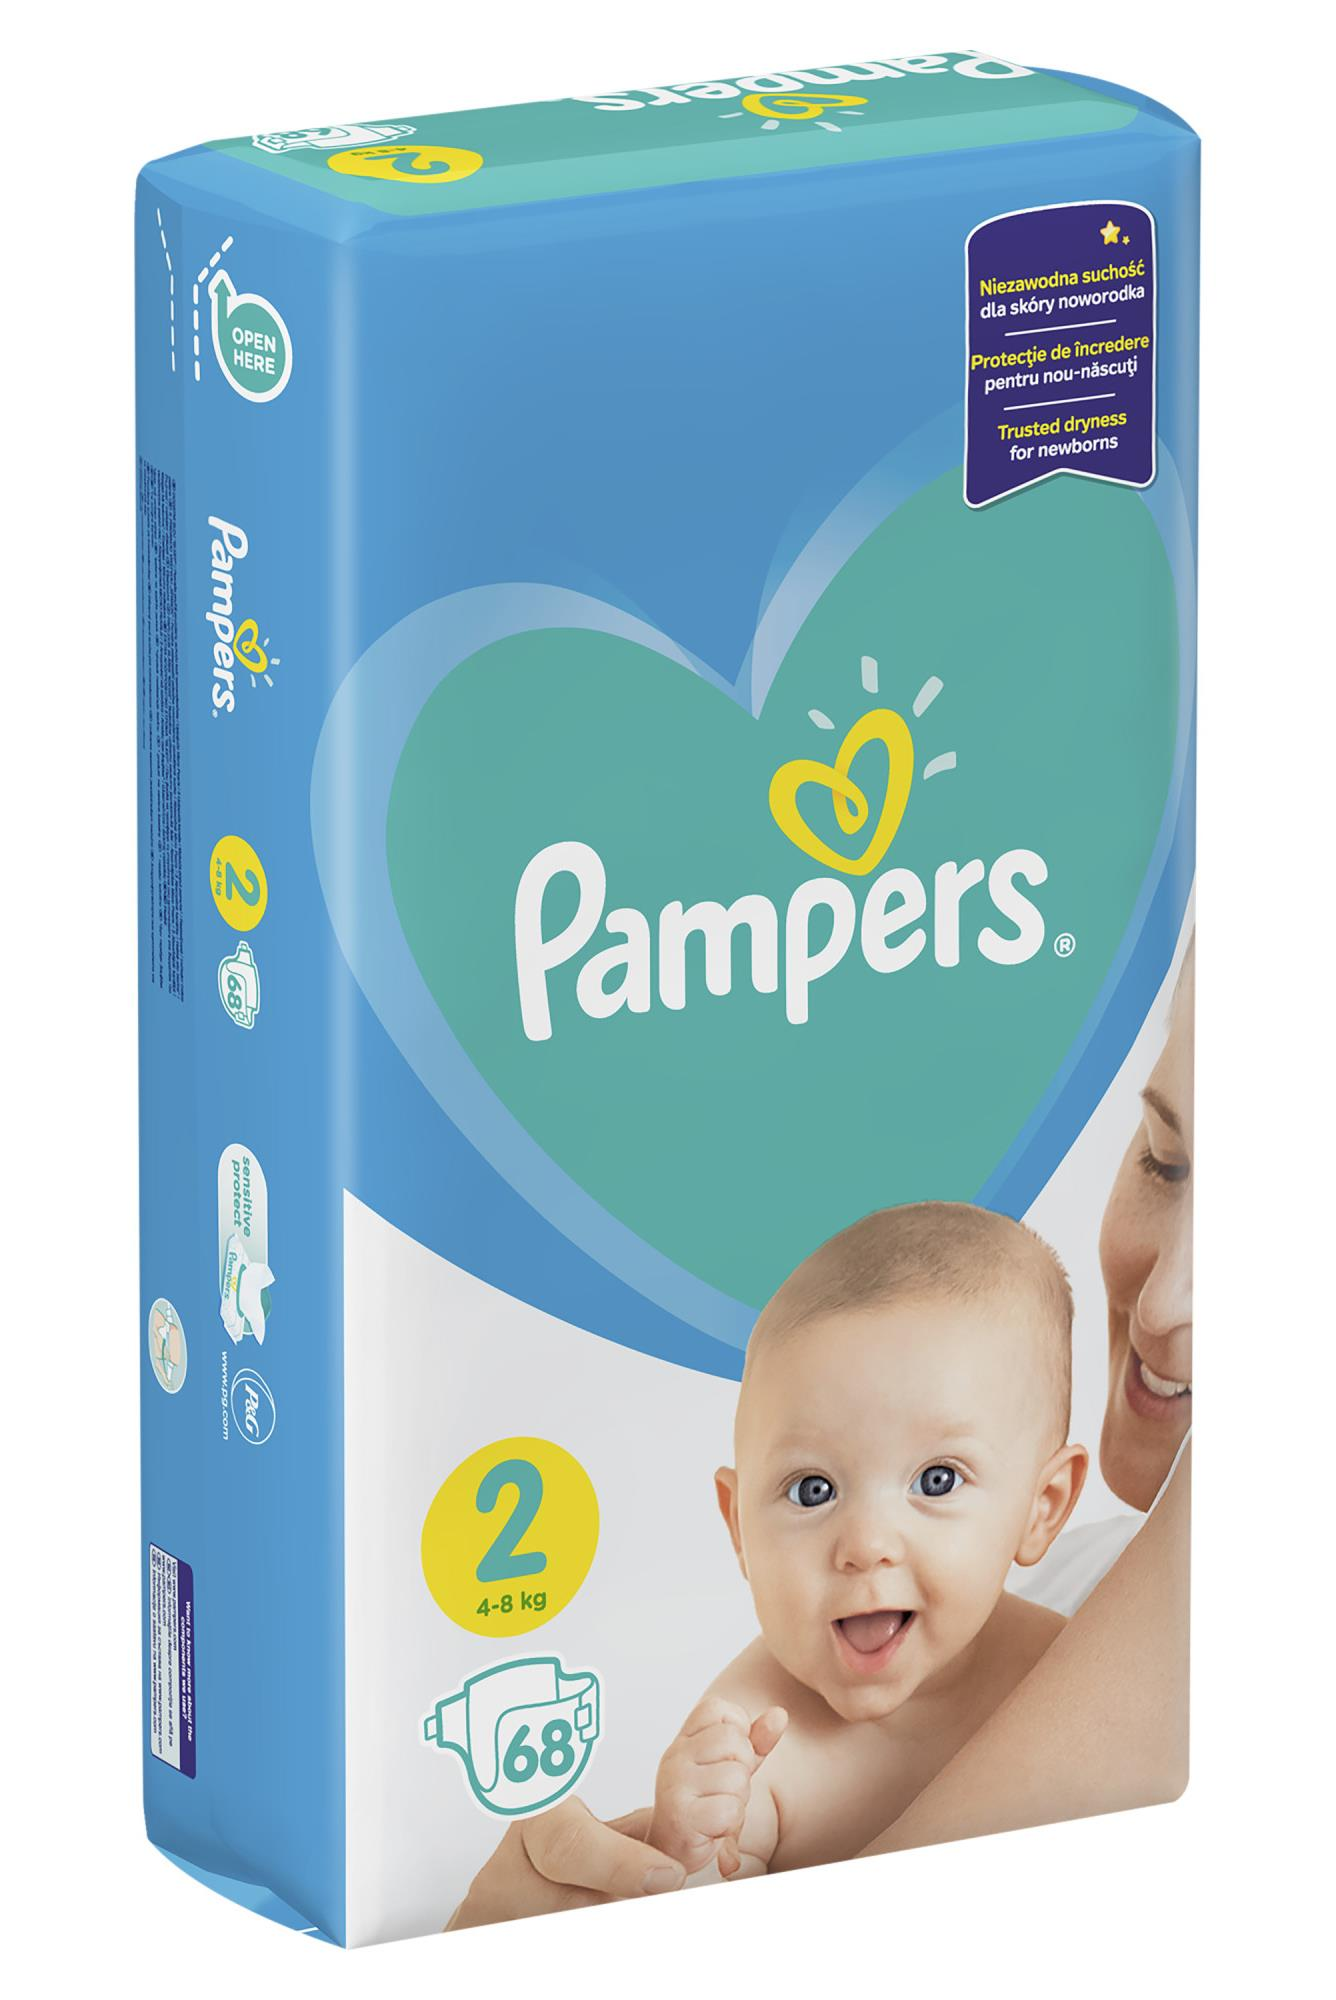 Pampers Diapers Mini 2 4-8 kg 68 pcs